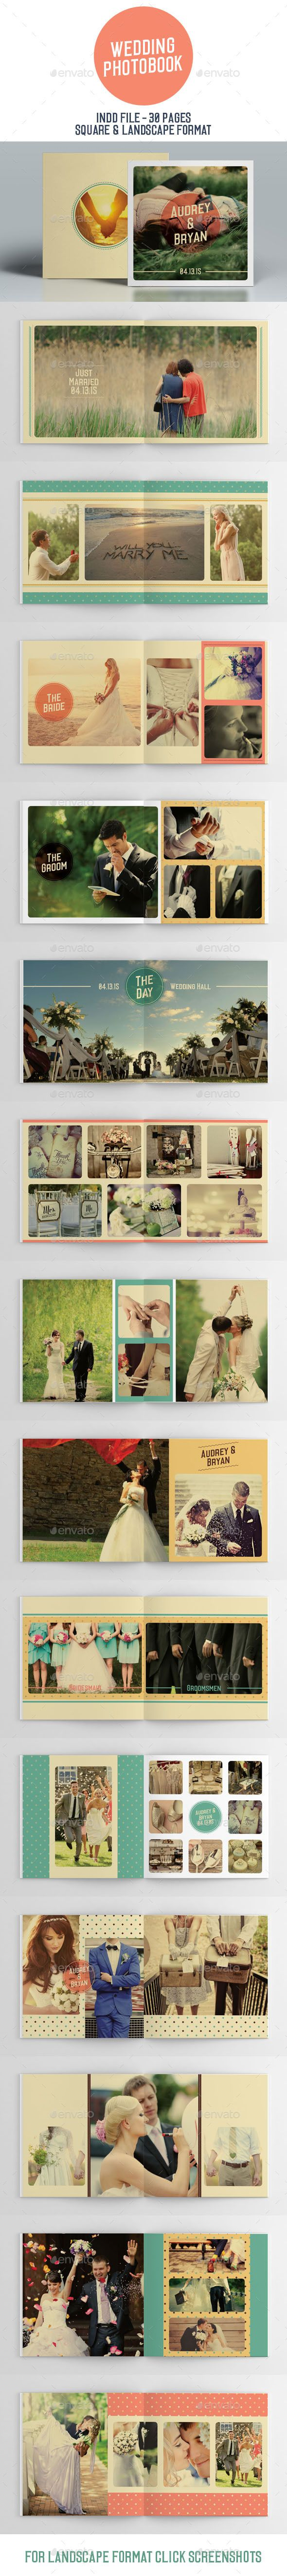 Wedding Photobook or Photo Album. For more details click on the link provided. :)